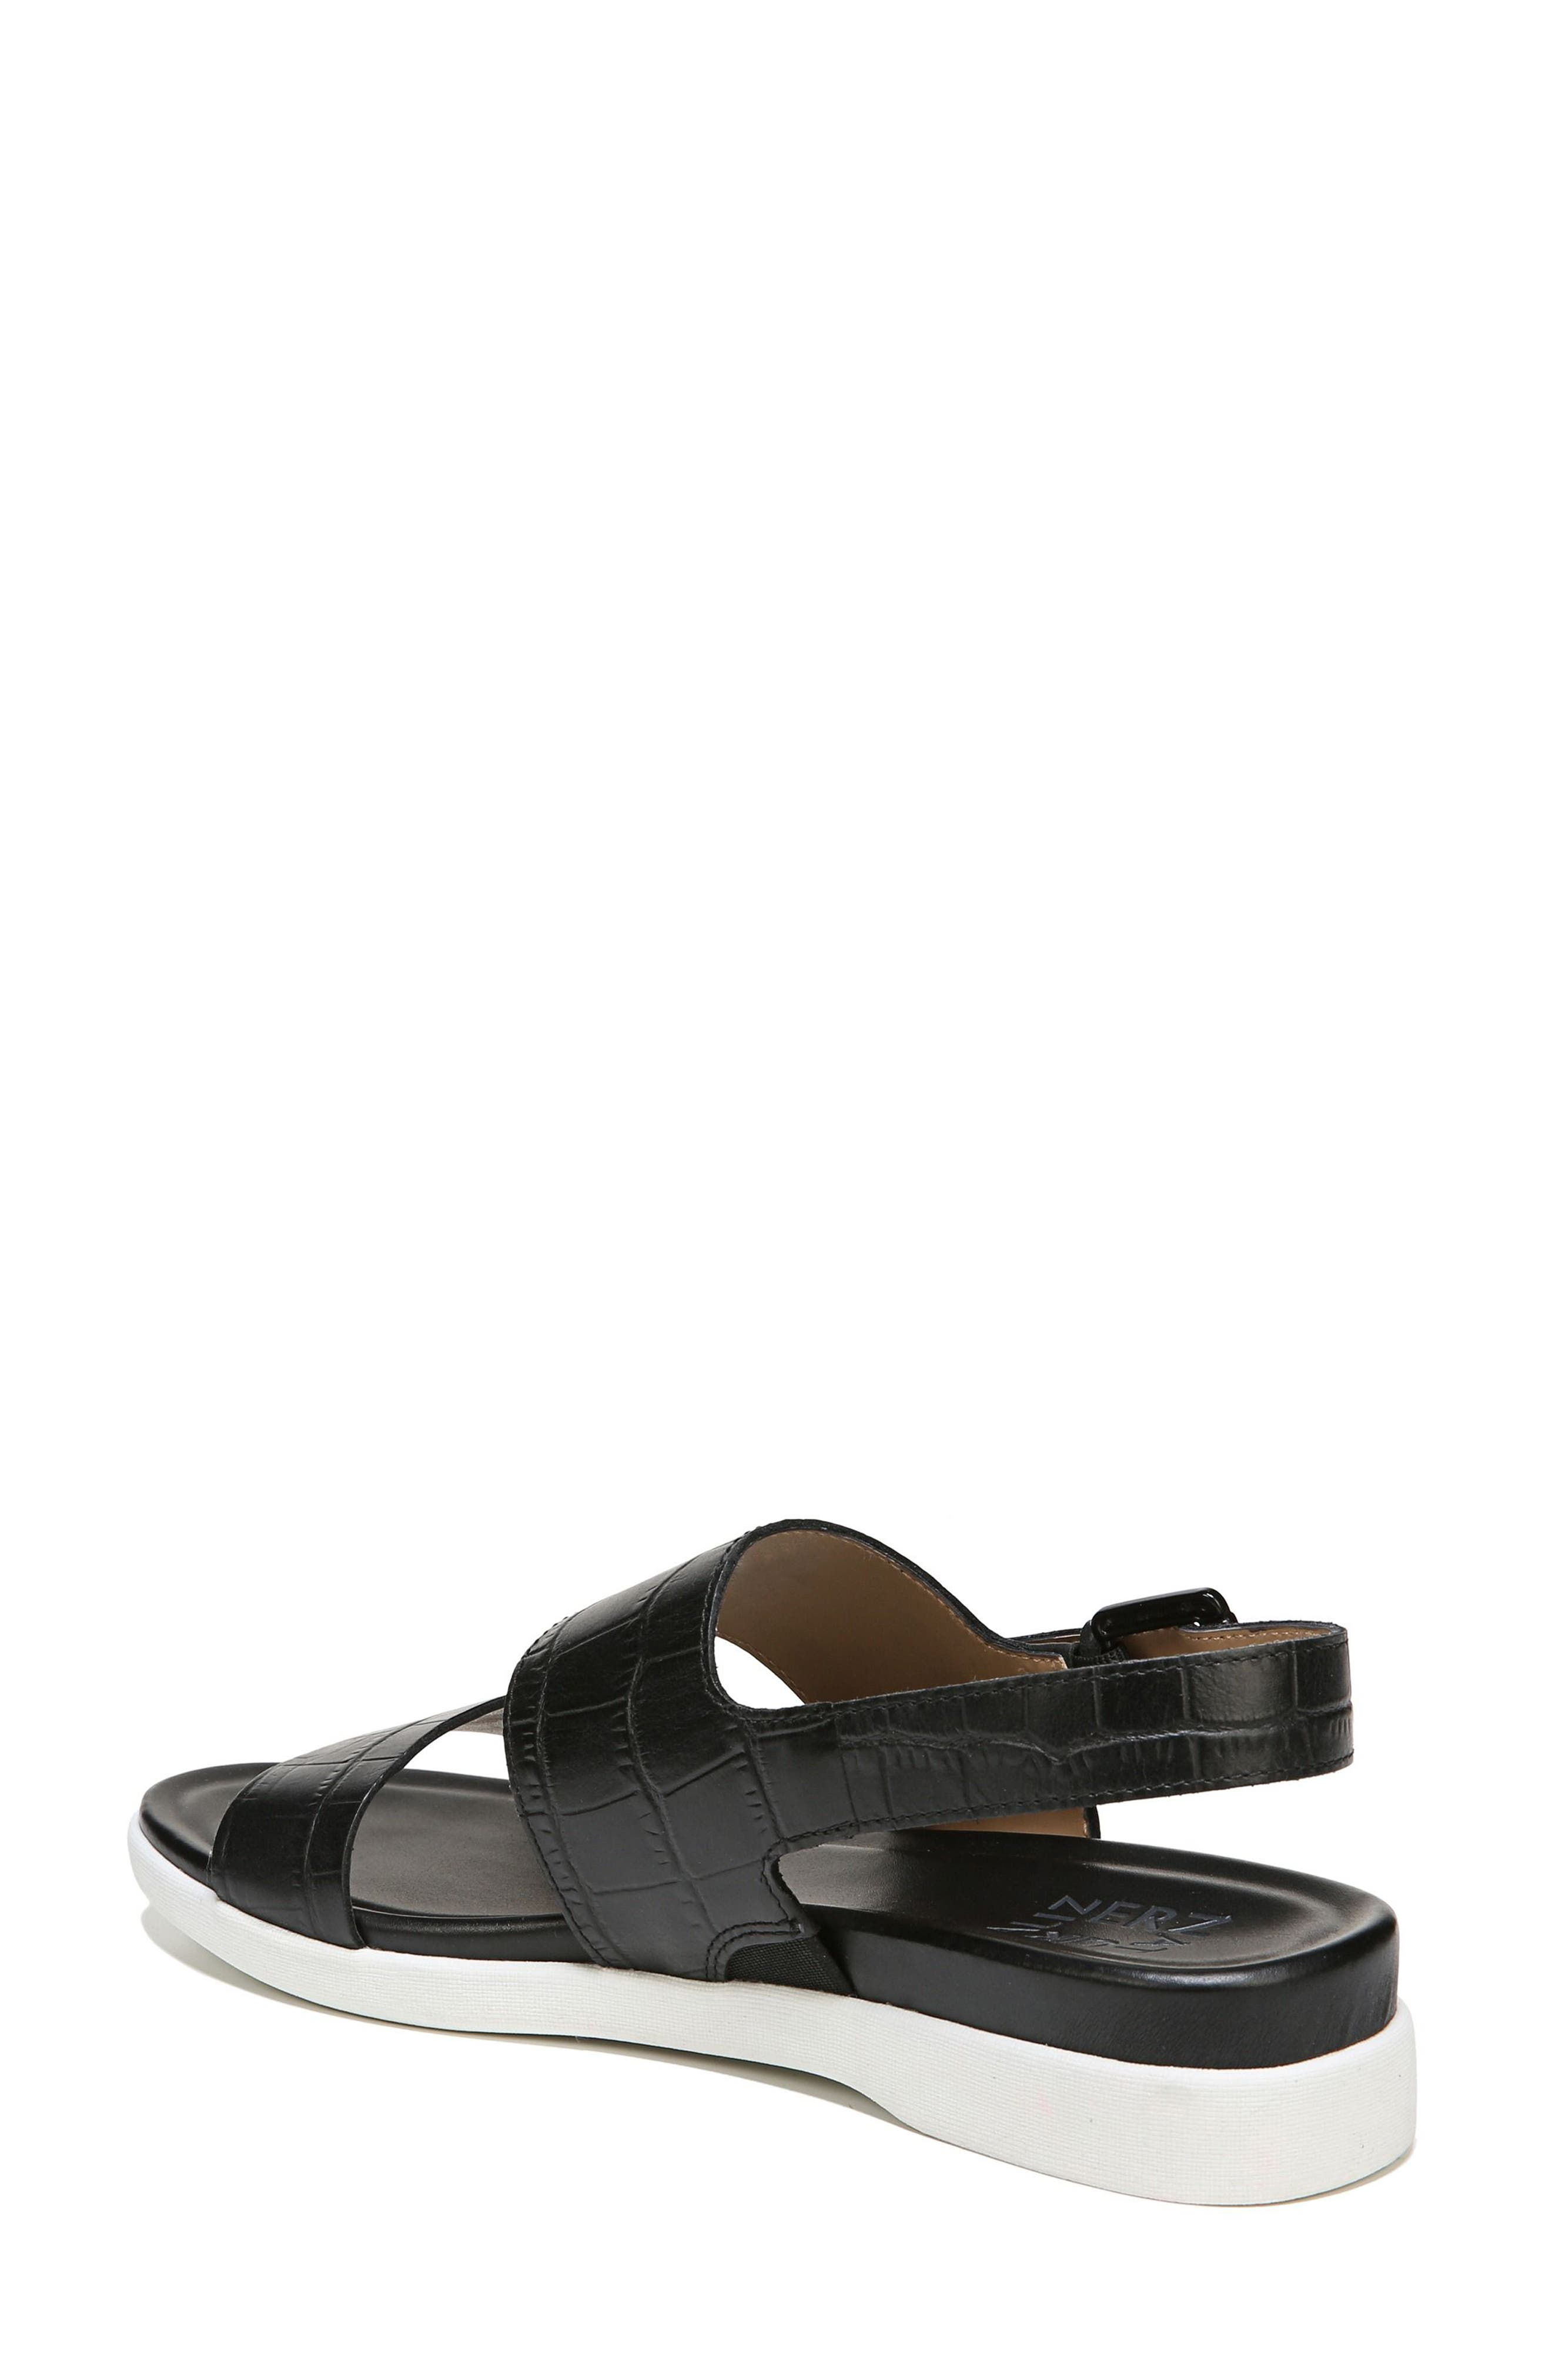 Emory Wedge Sandal,                             Alternate thumbnail 7, color,                             BLACK PRINTED LEATHER